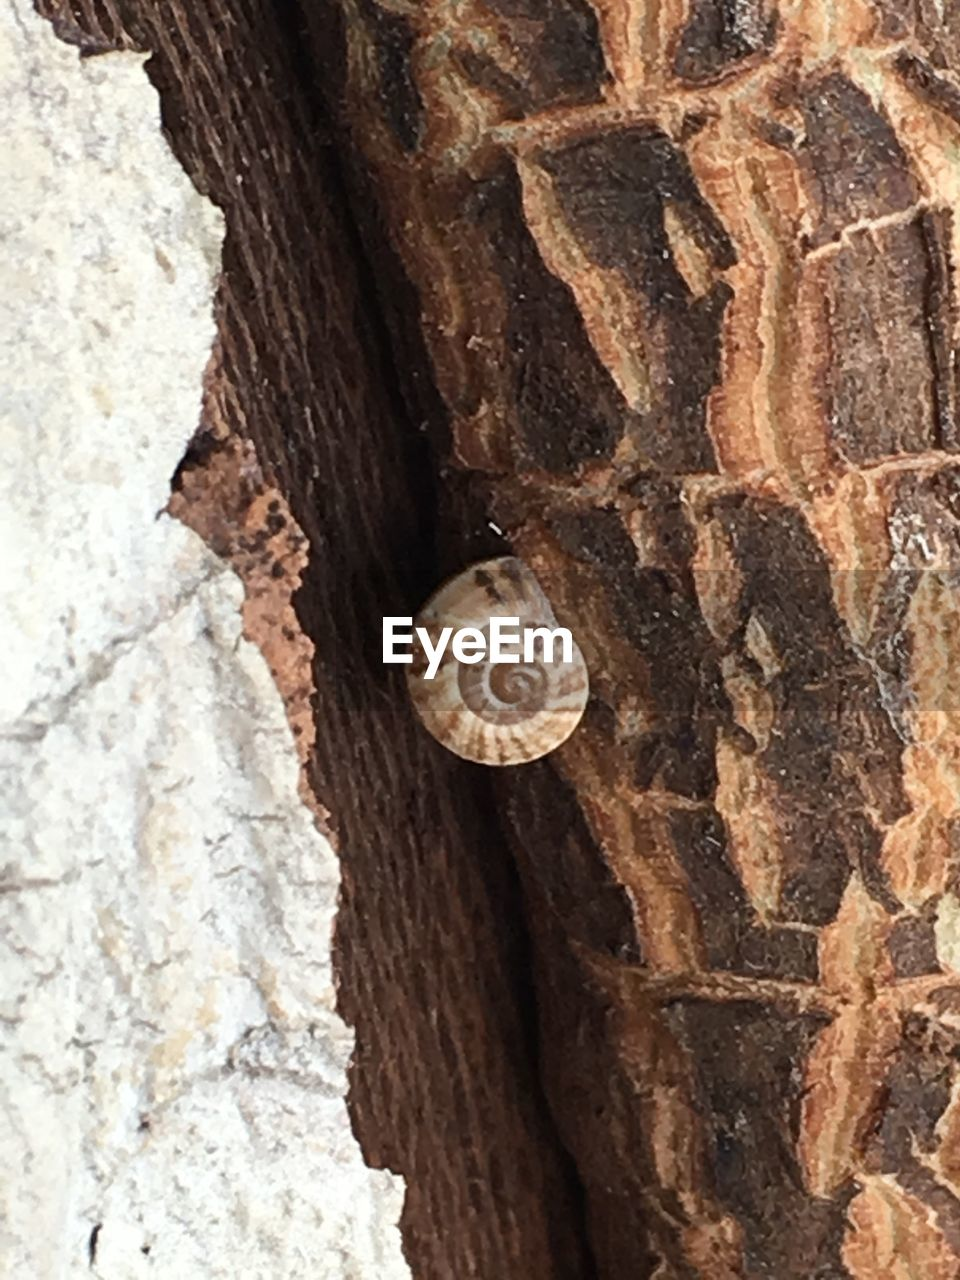 animal wildlife, animal, animal themes, mollusk, shell, animals in the wild, invertebrate, one animal, gastropod, close-up, animal shell, tree trunk, trunk, no people, snail, textured, nature, natural pattern, pattern, spiral, outdoors